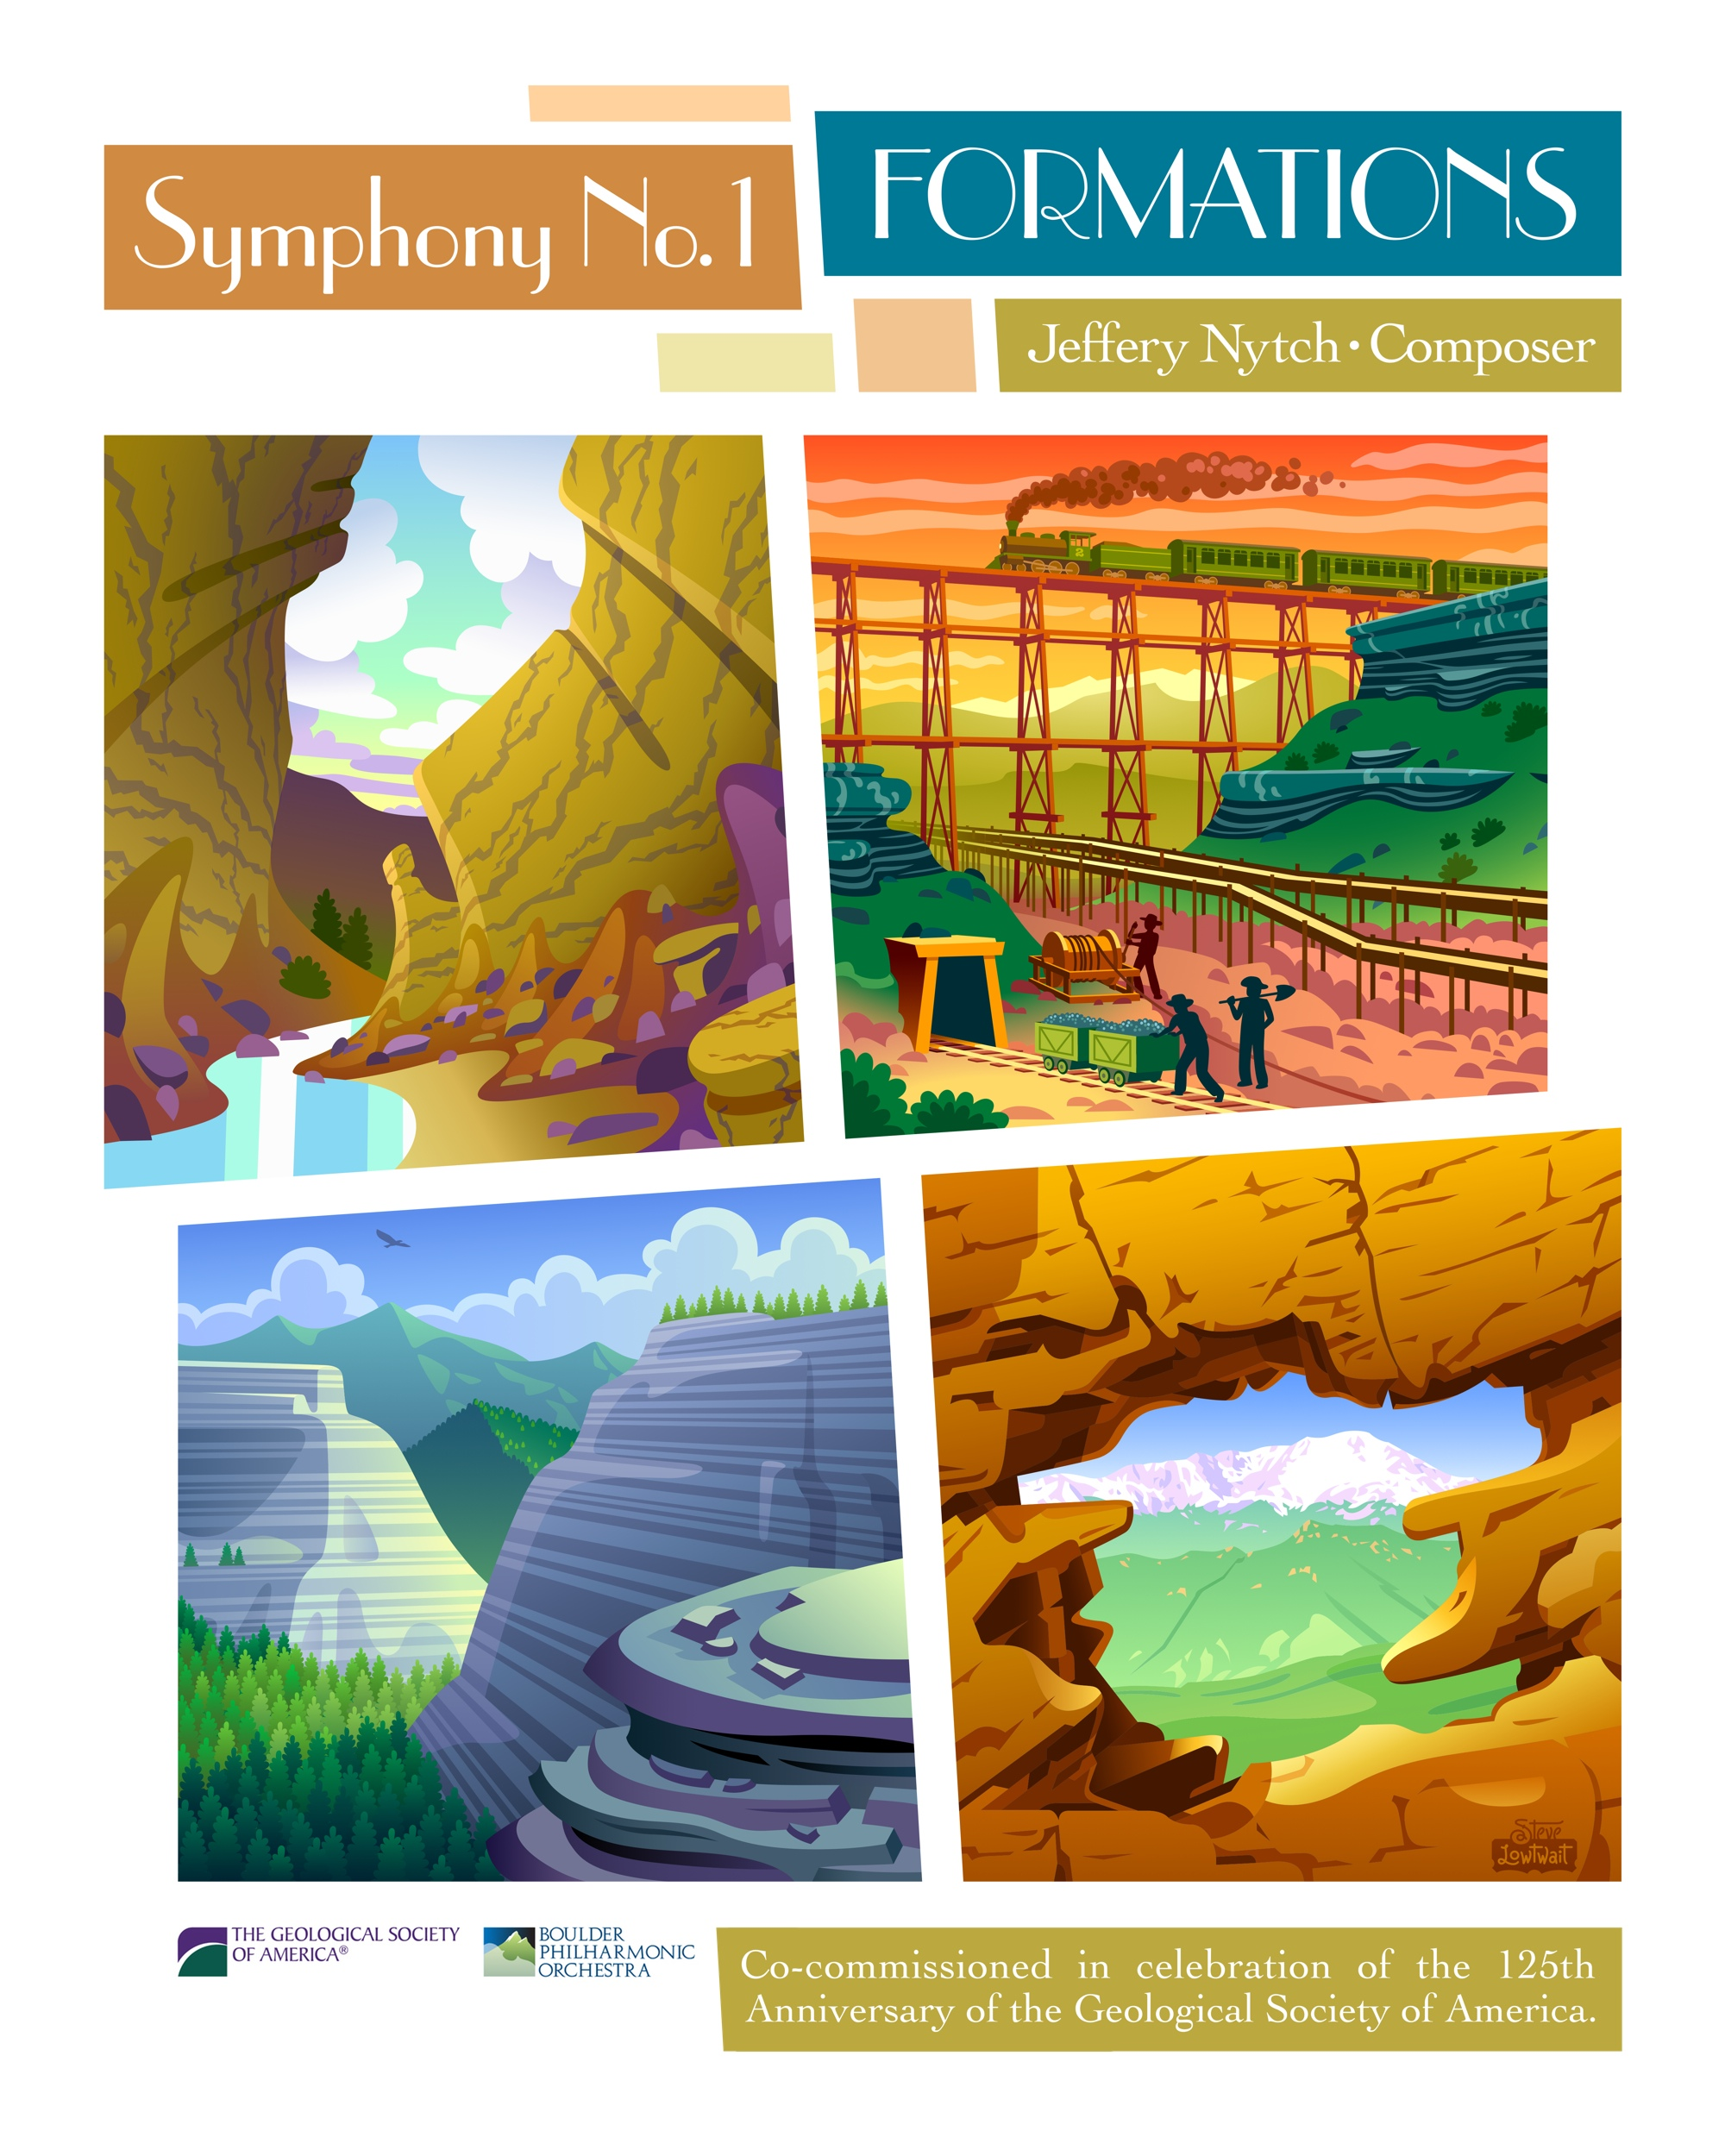 Formations Symphony • Each section of this poster captures the music in a four part symphony about geologic history.  Client: The Geological Society of America